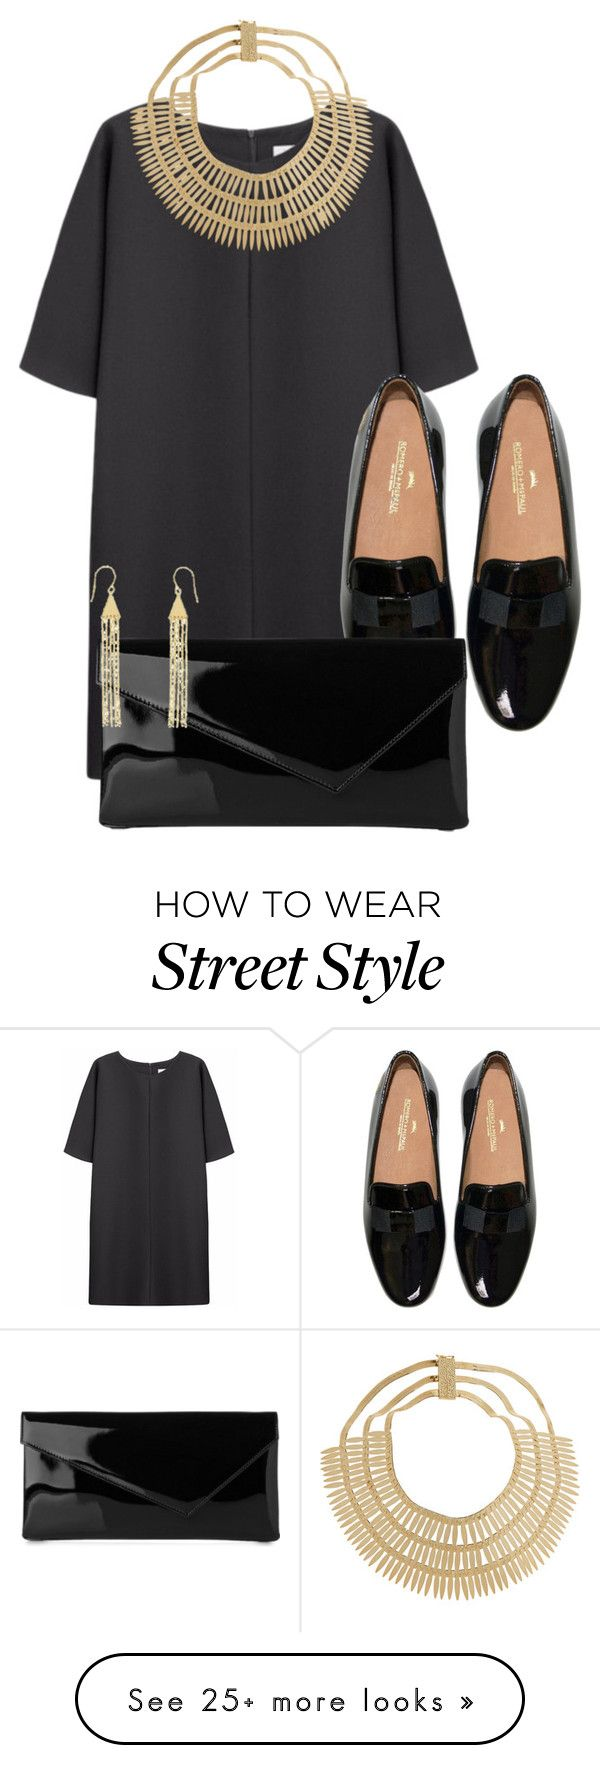 """Senza titolo #194"" by eliscrignaro on Polyvore featuring Non, Rosantica, L.K.Bennett, Allurez, holidaystyle and oversizeddress"